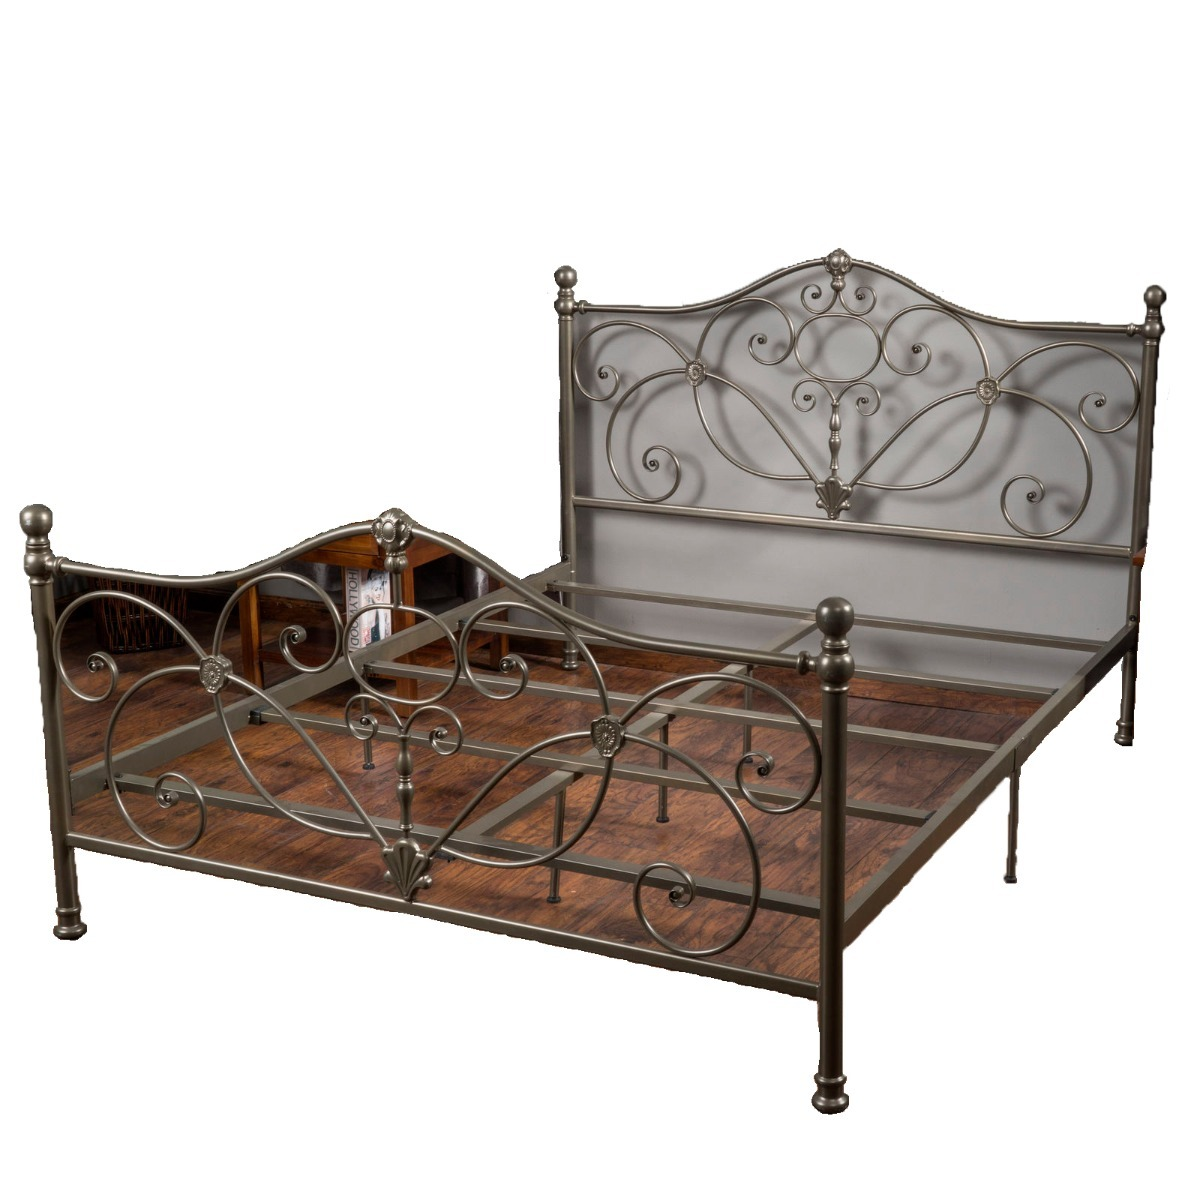 Base Para Cama De Metal King Size - $ 9,399.00 en Mercado Libre